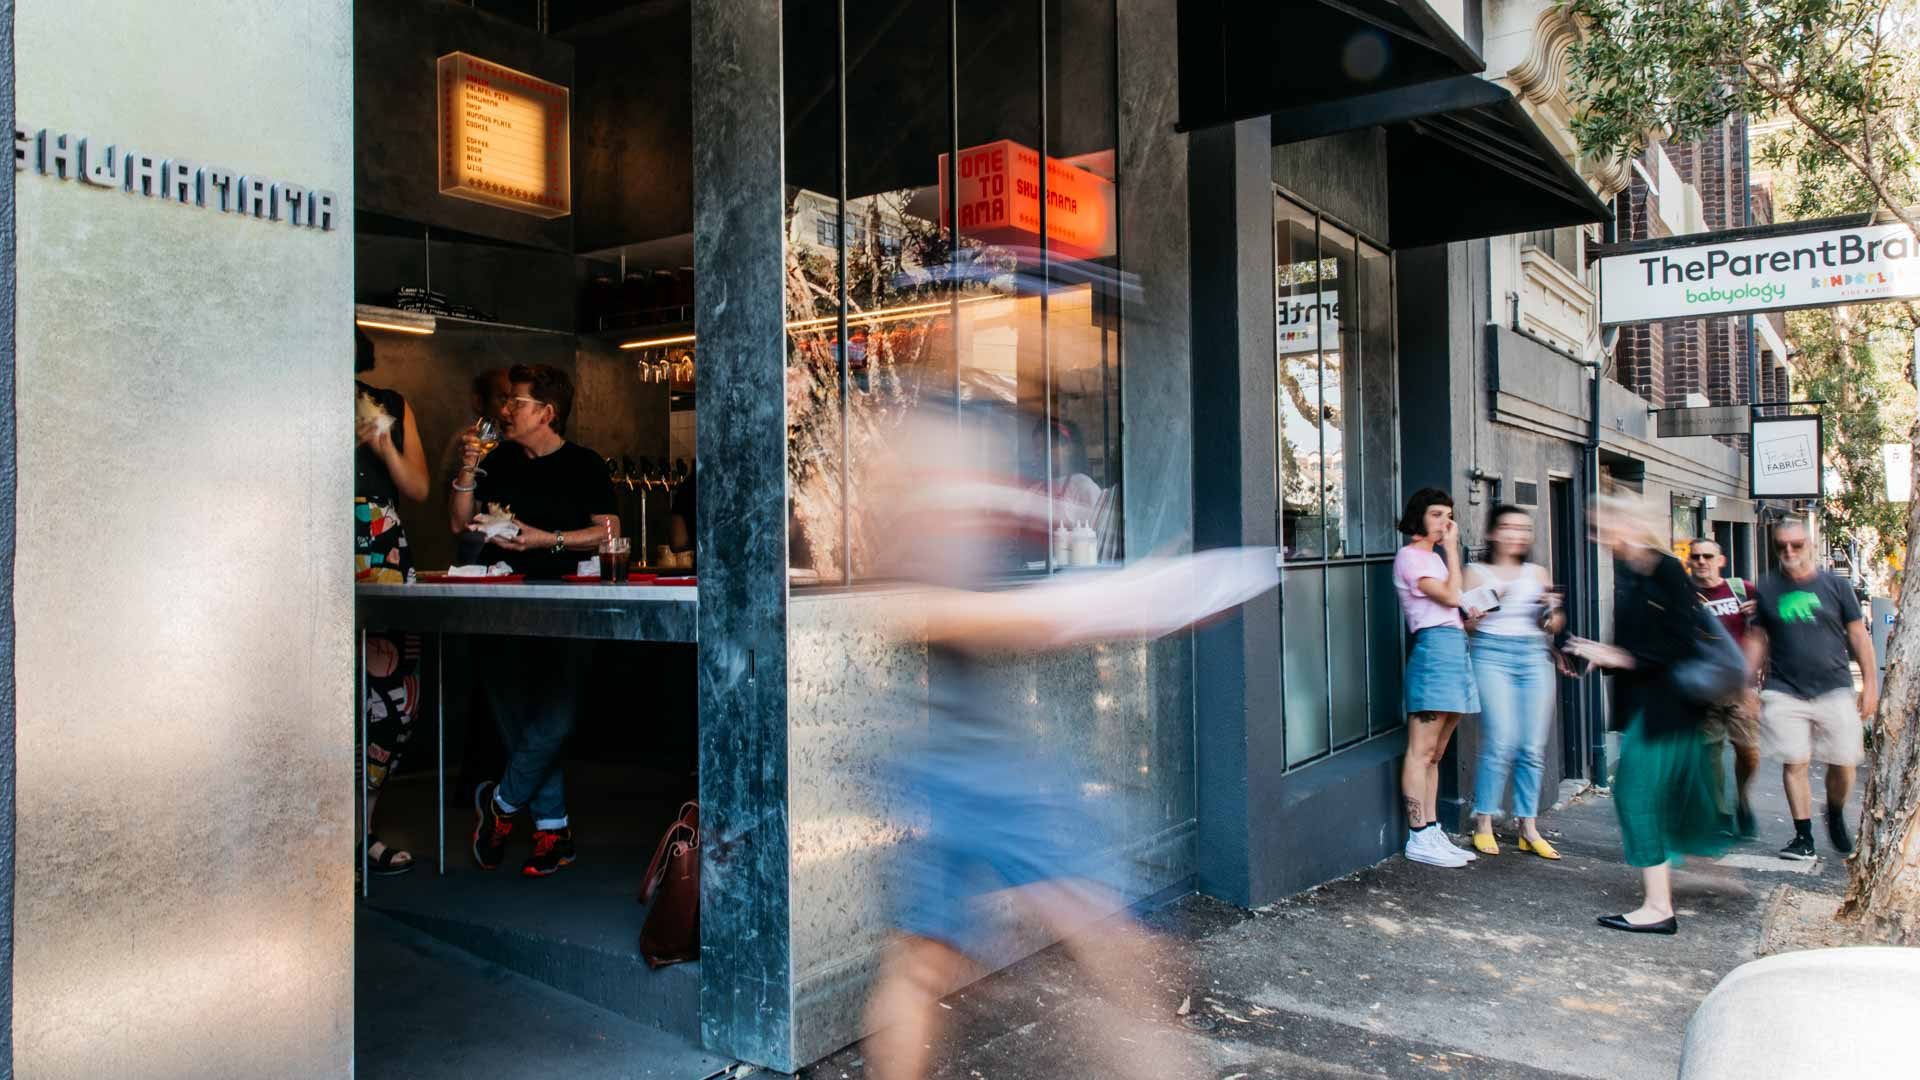 Shwarmama Is Surry Hills' New Hole-in-the-Wall Kebab Shop by Ester's Mat Lindsay